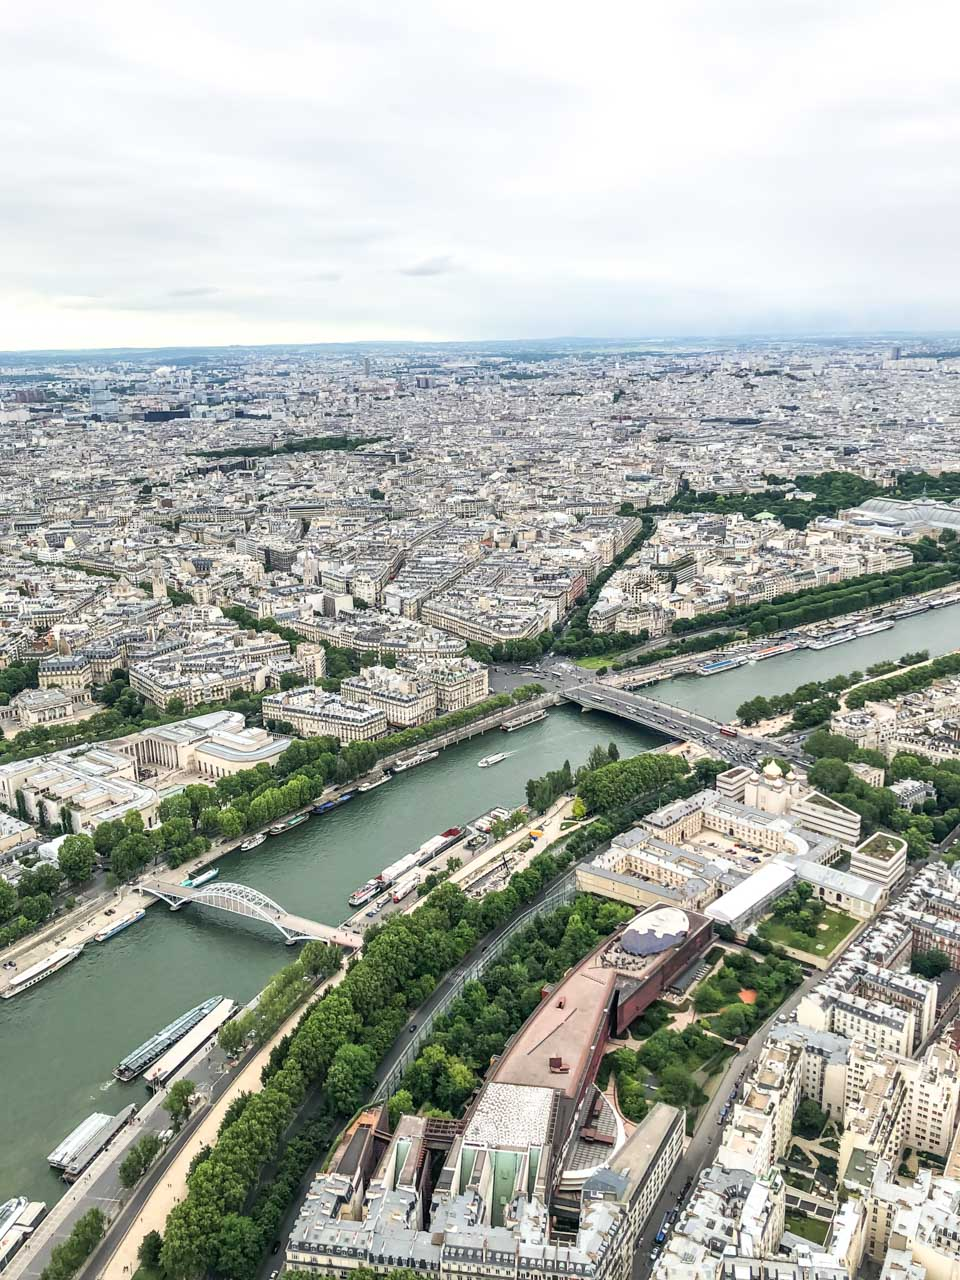 A panoramic view of the Seine River dividing Paris into two banks seen from the observation deck at the top of the Eiffel Tower